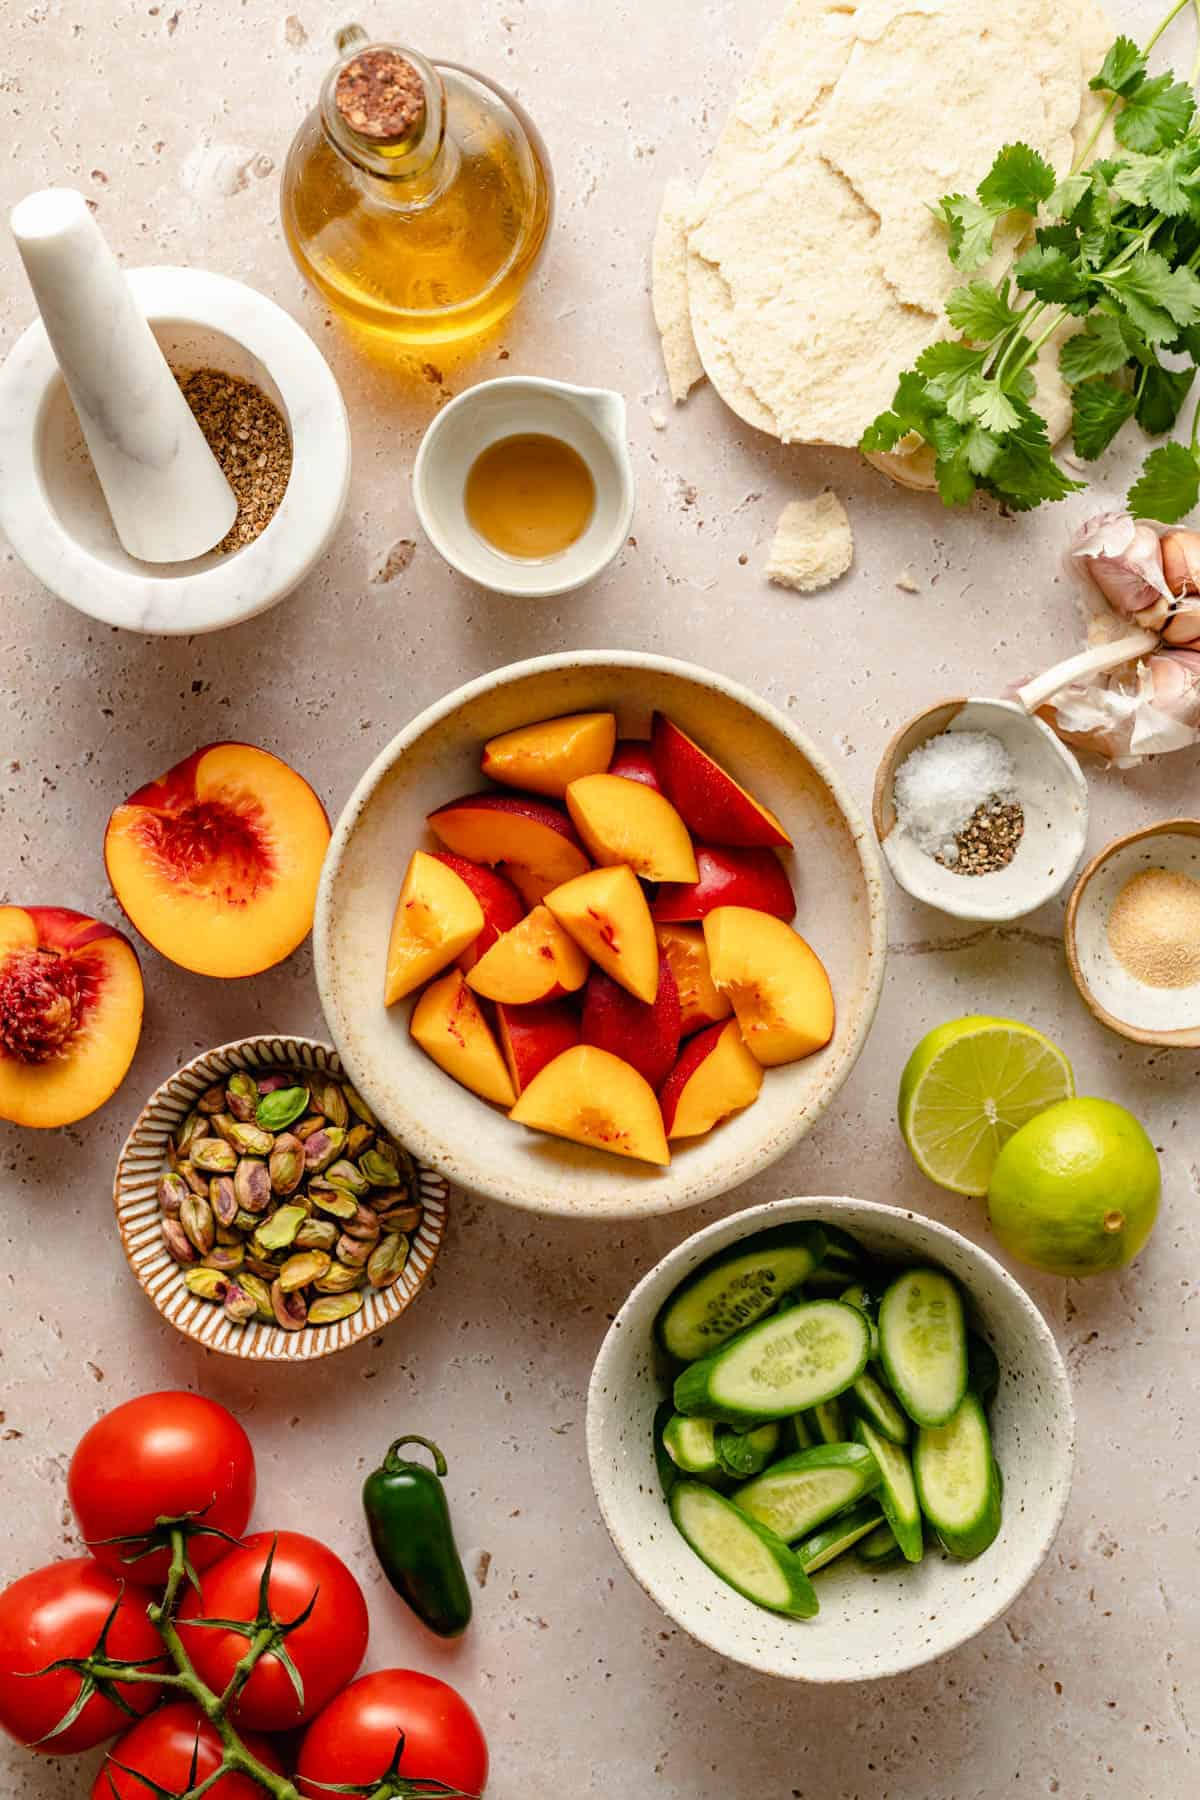 An array of ingredients in bowls, including nectarines, cucumbers, tomatoes, pistachios and seasonings